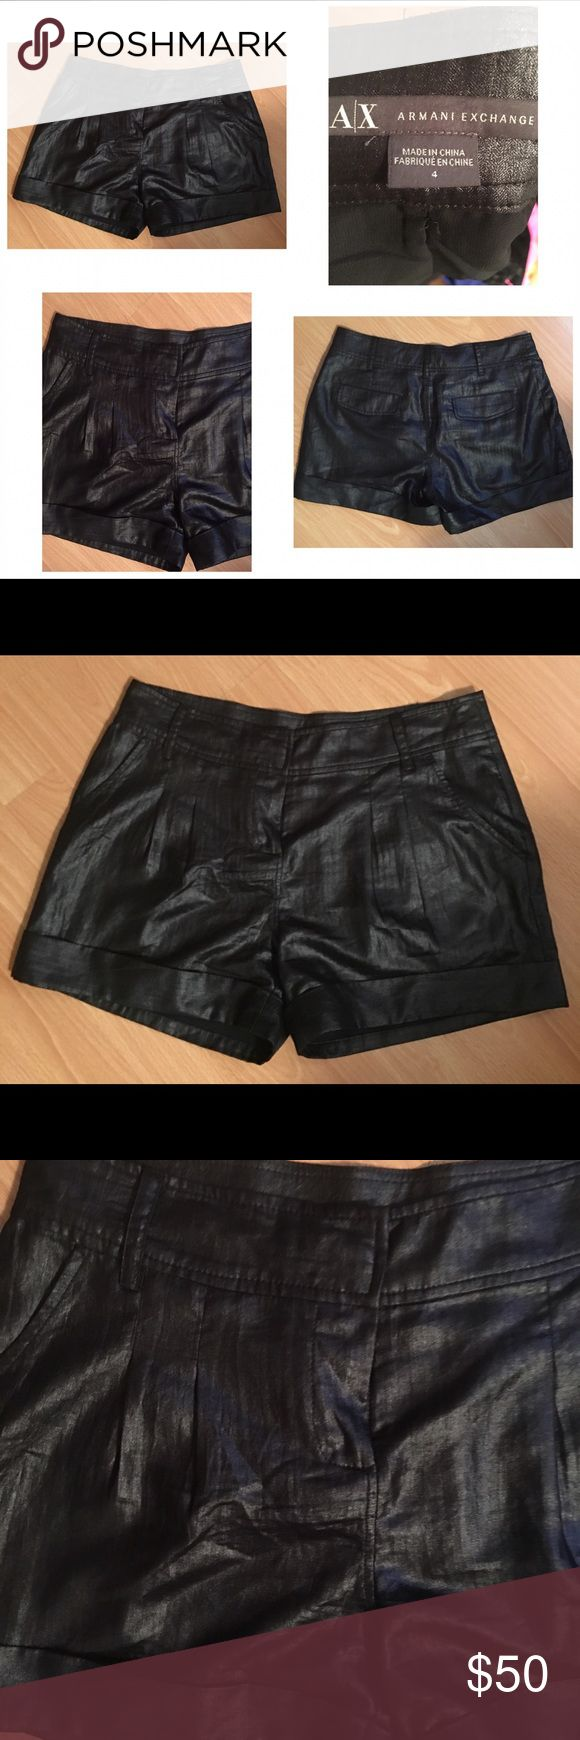 Armani Exchange shorts black These shorts are gorgeous! They look like they are leather but they are a great shiny material . They look great day or night . These were only worn once A/X Armani Exchange Shorts